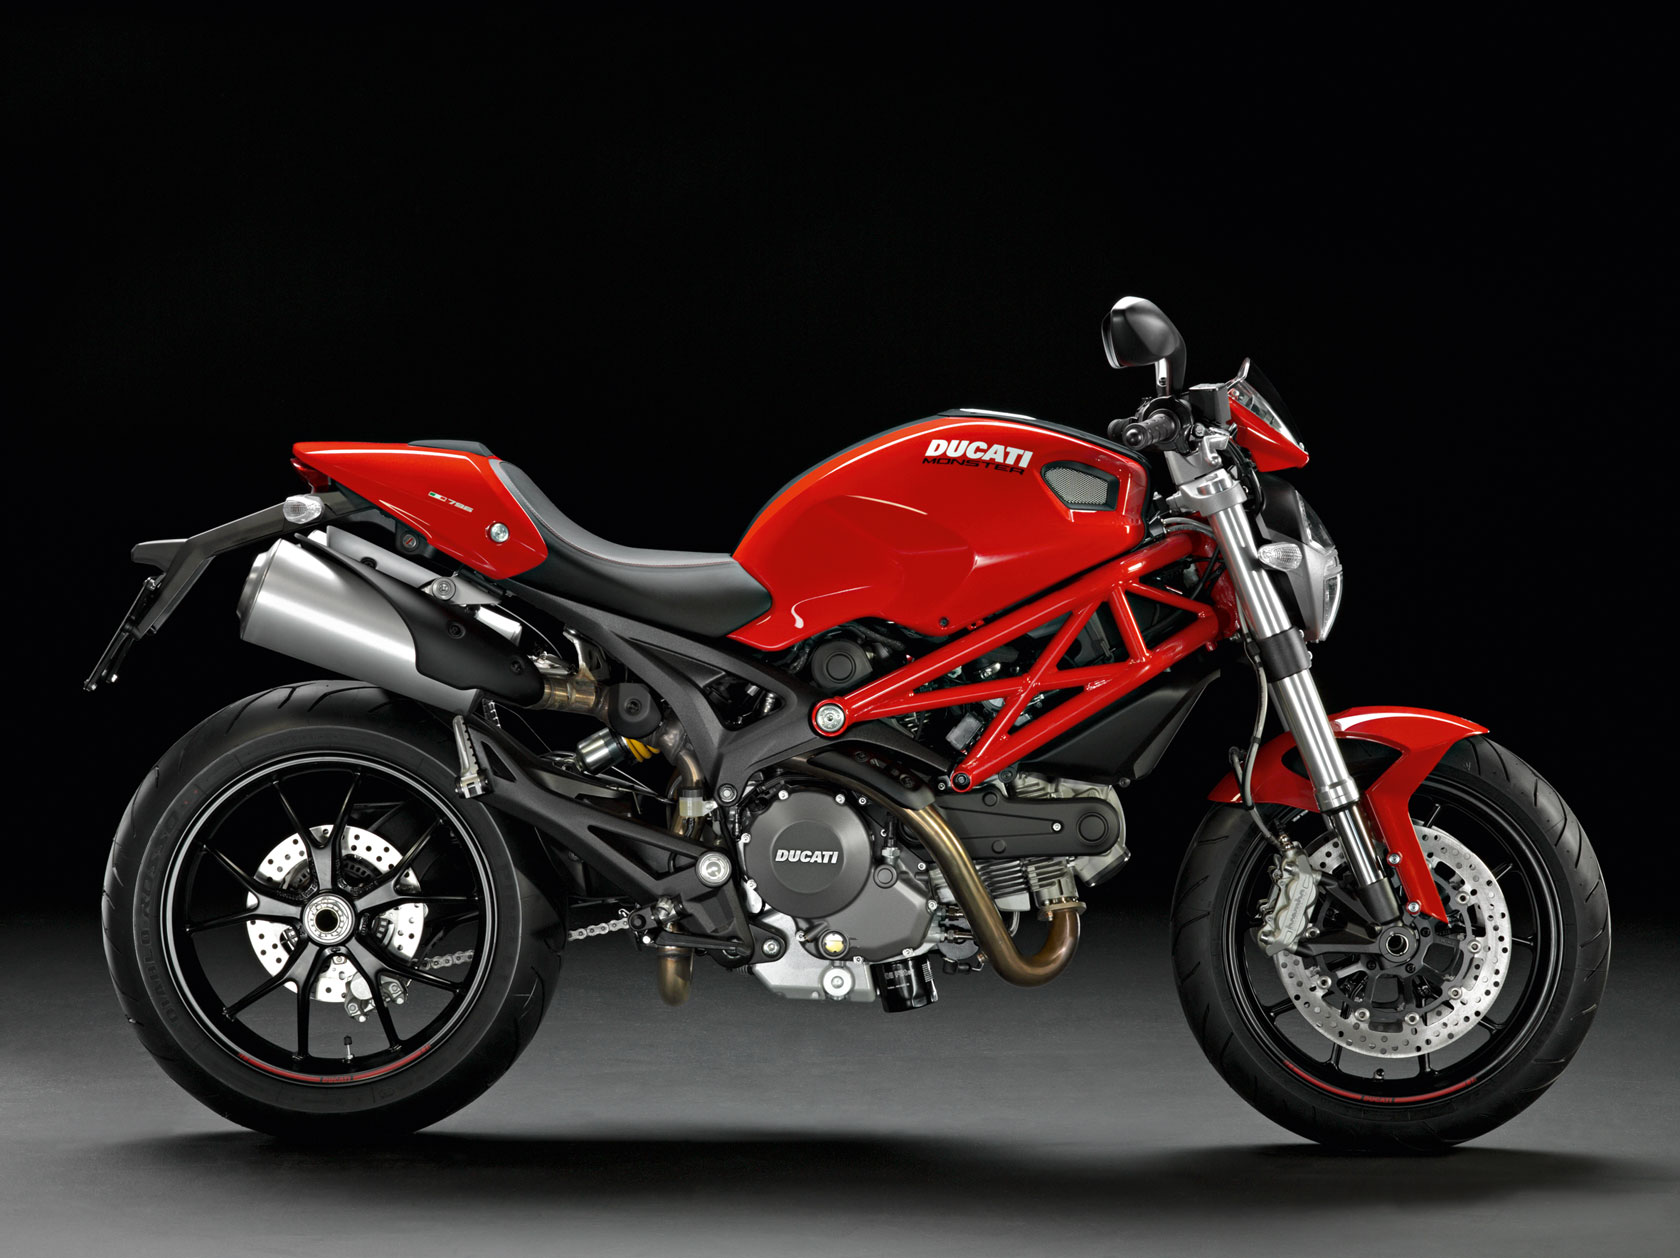 Ducati Hypermotard 796 2011 images #79575